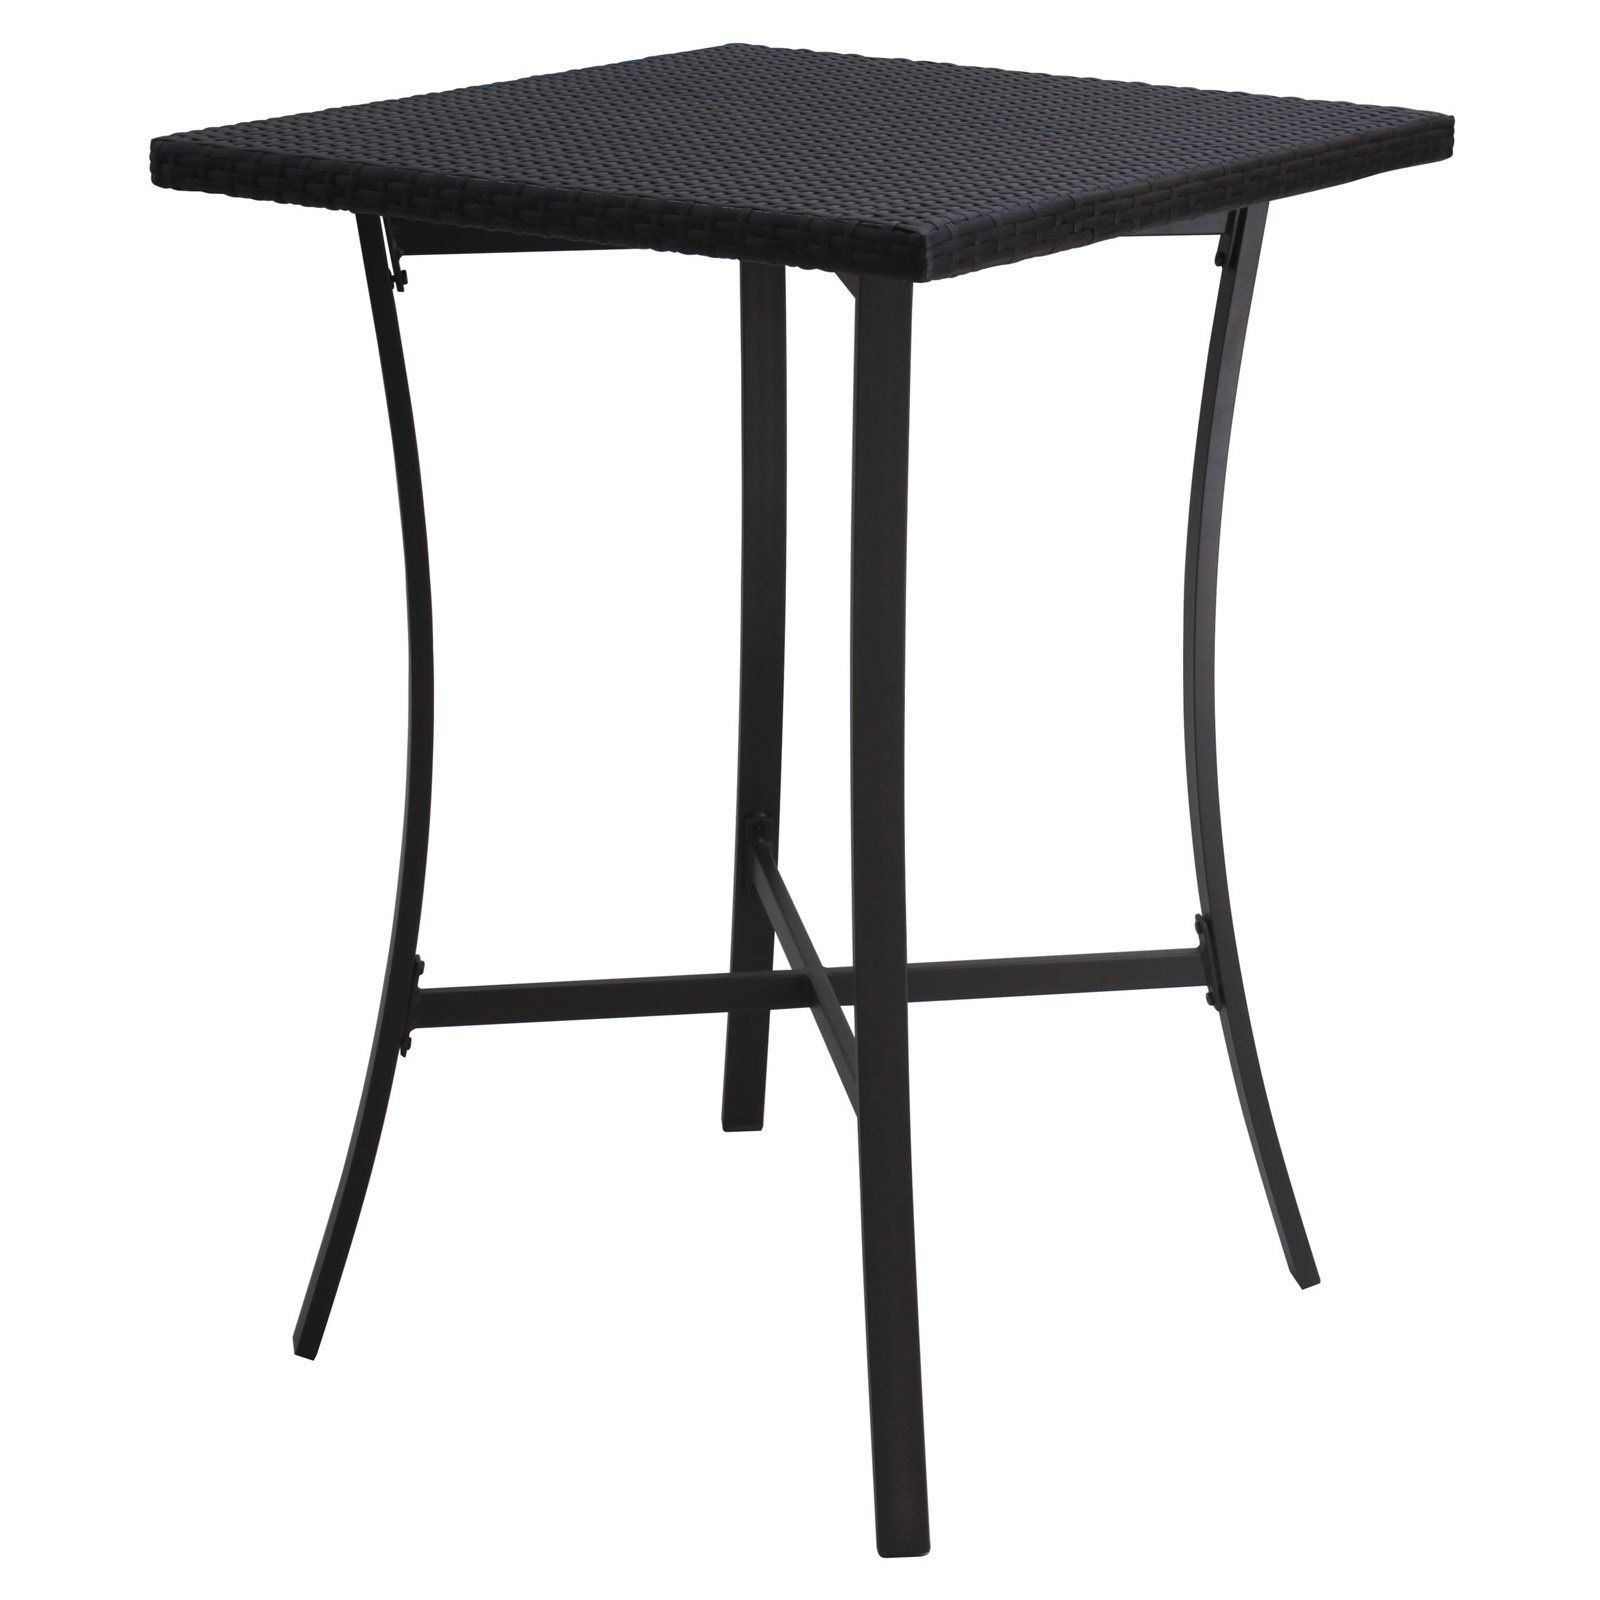 Outdoor best selling home decor furniture camiri bar table